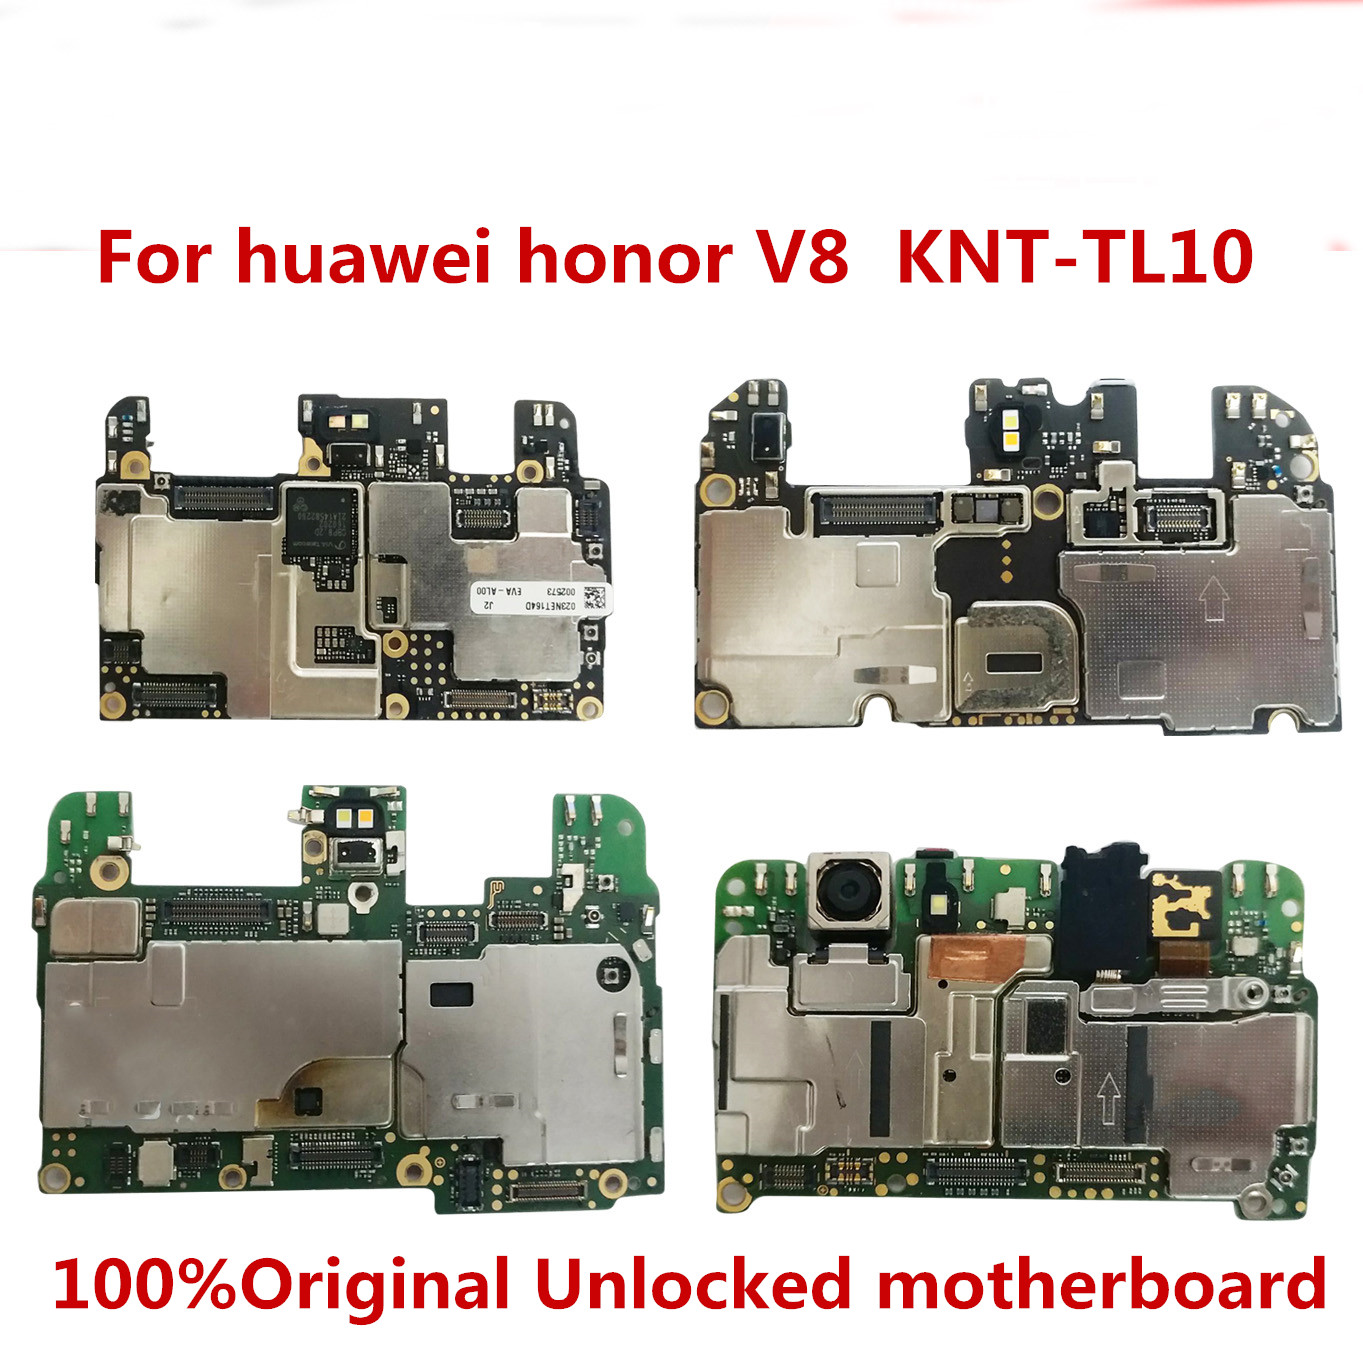 for Huawei Honor V8 KNT-TL10 32GB Unlocked Full-Working 100%Original title=